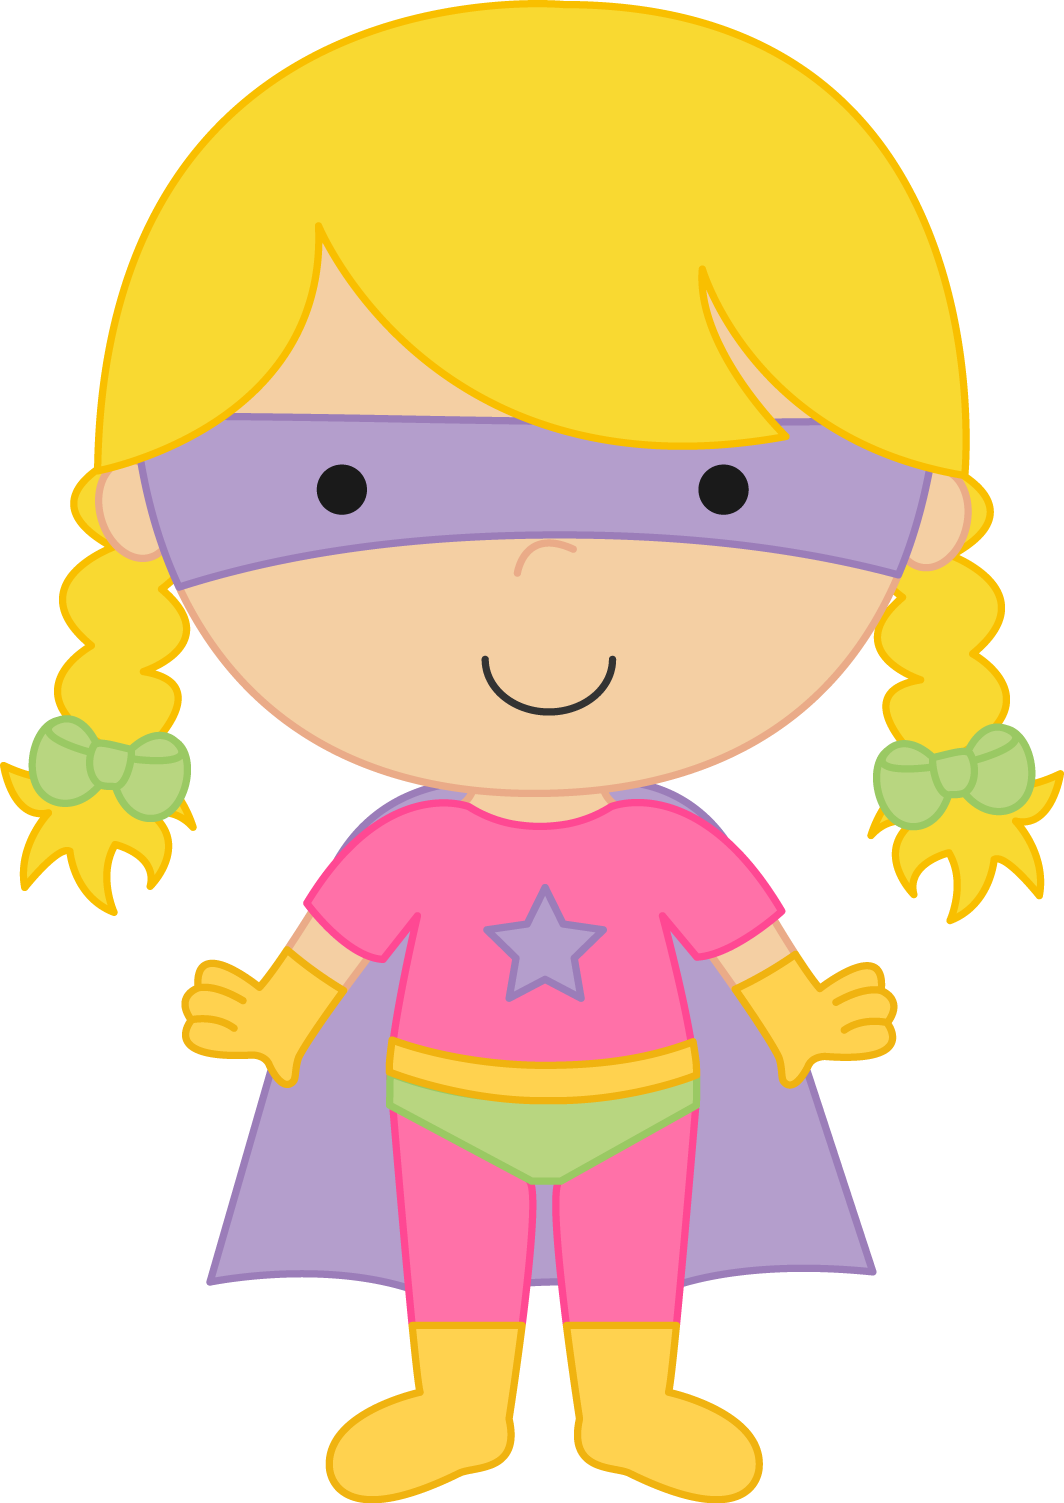 Super girl clipart jpg royalty free library Supergirl Clipart - Clipart Kid jpg royalty free library